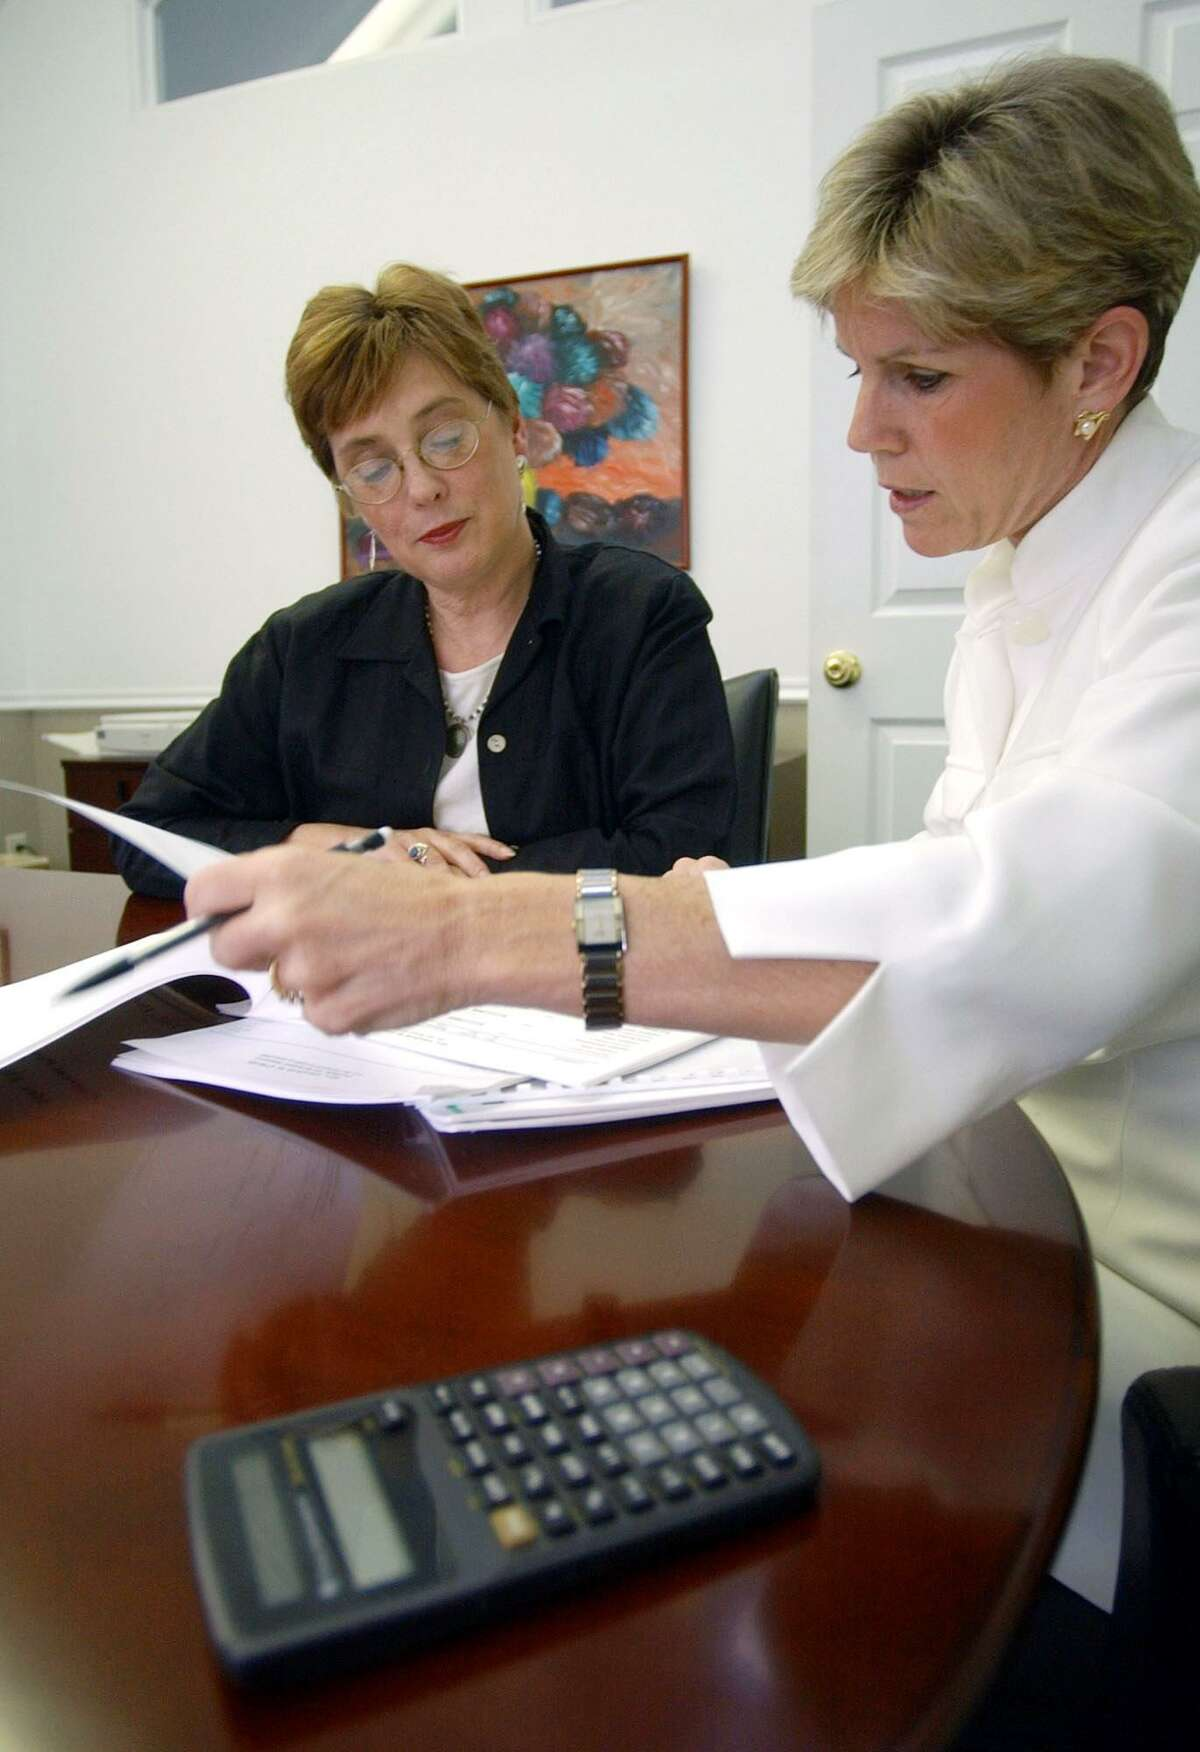 A certified financial planner reviews the portfolio of her client, a 60-year-old mother of three.